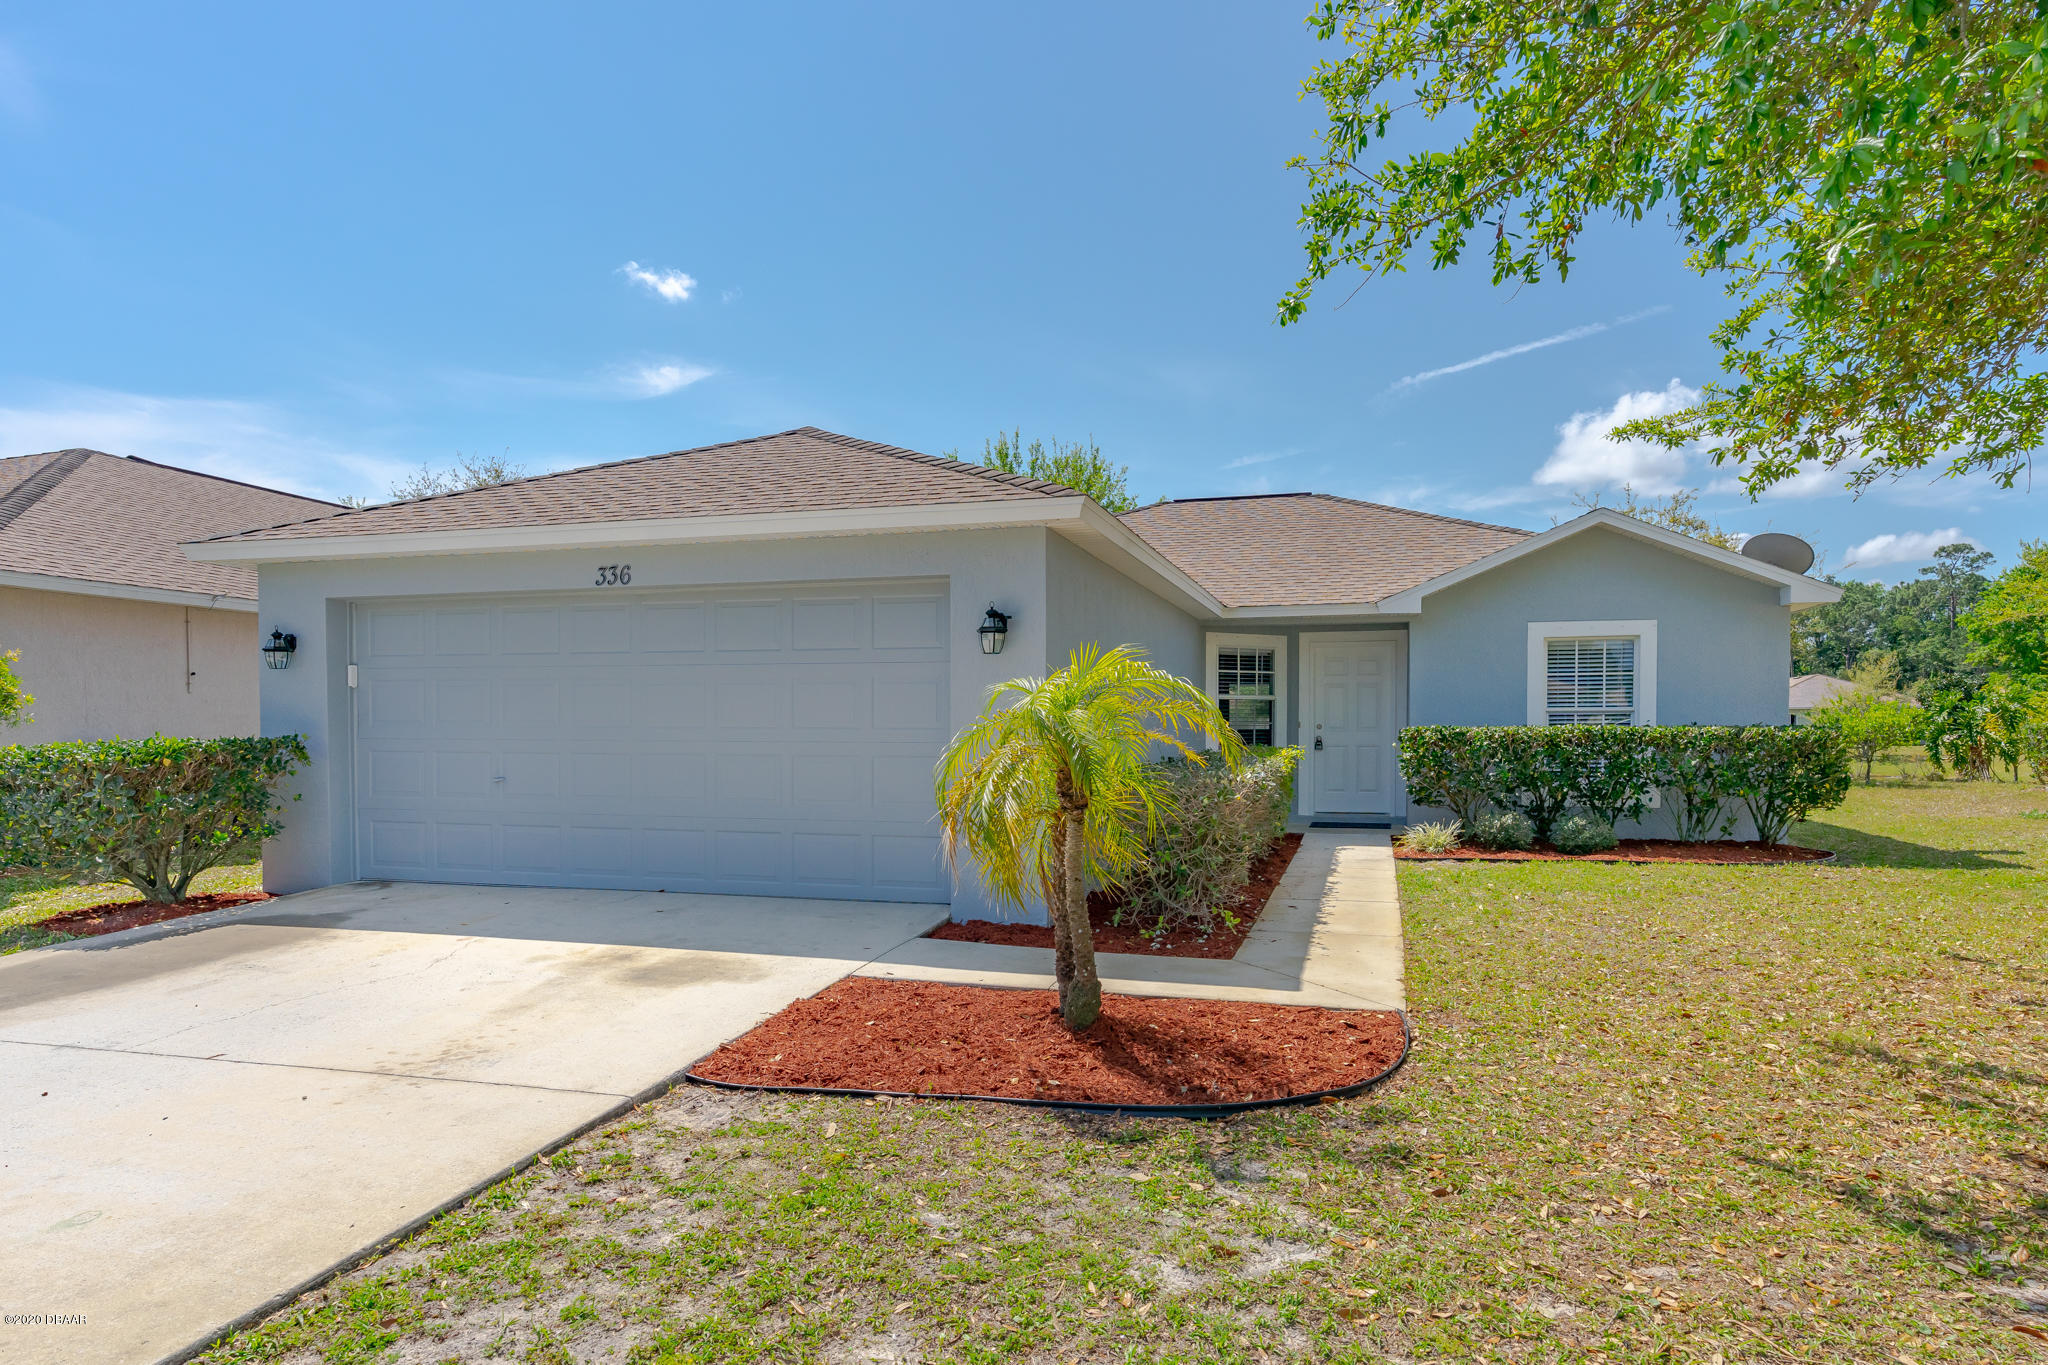 336 Grand Preserve Daytona Beach - 1